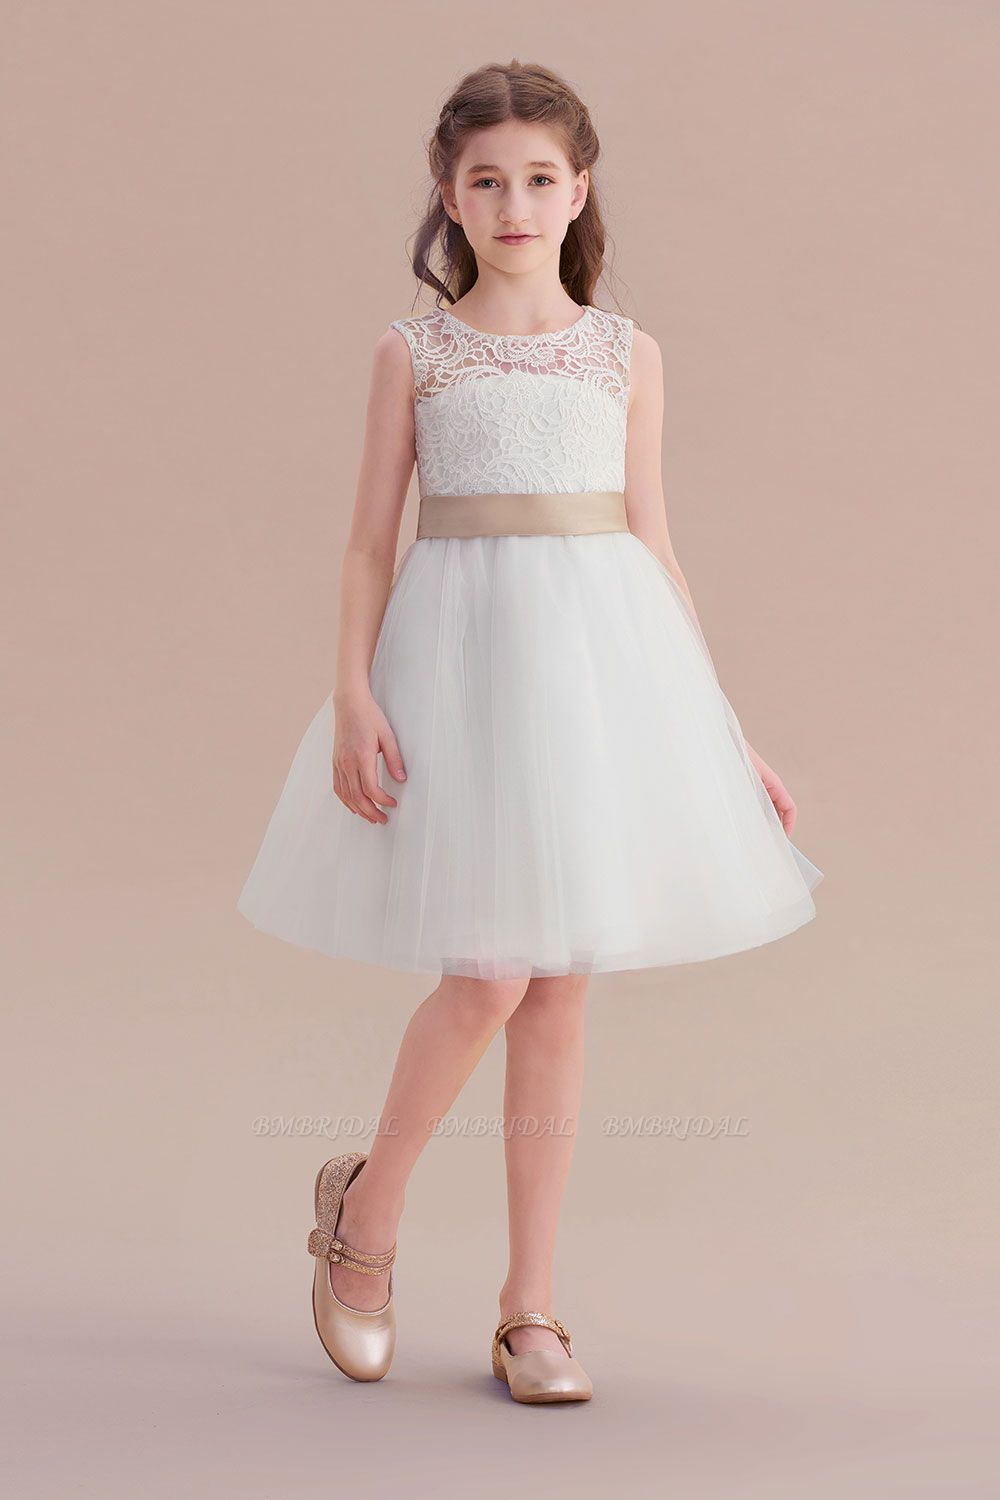 BMbridal A-Line Bow Tulle Lace Knee Length Flower Girl Dress Online